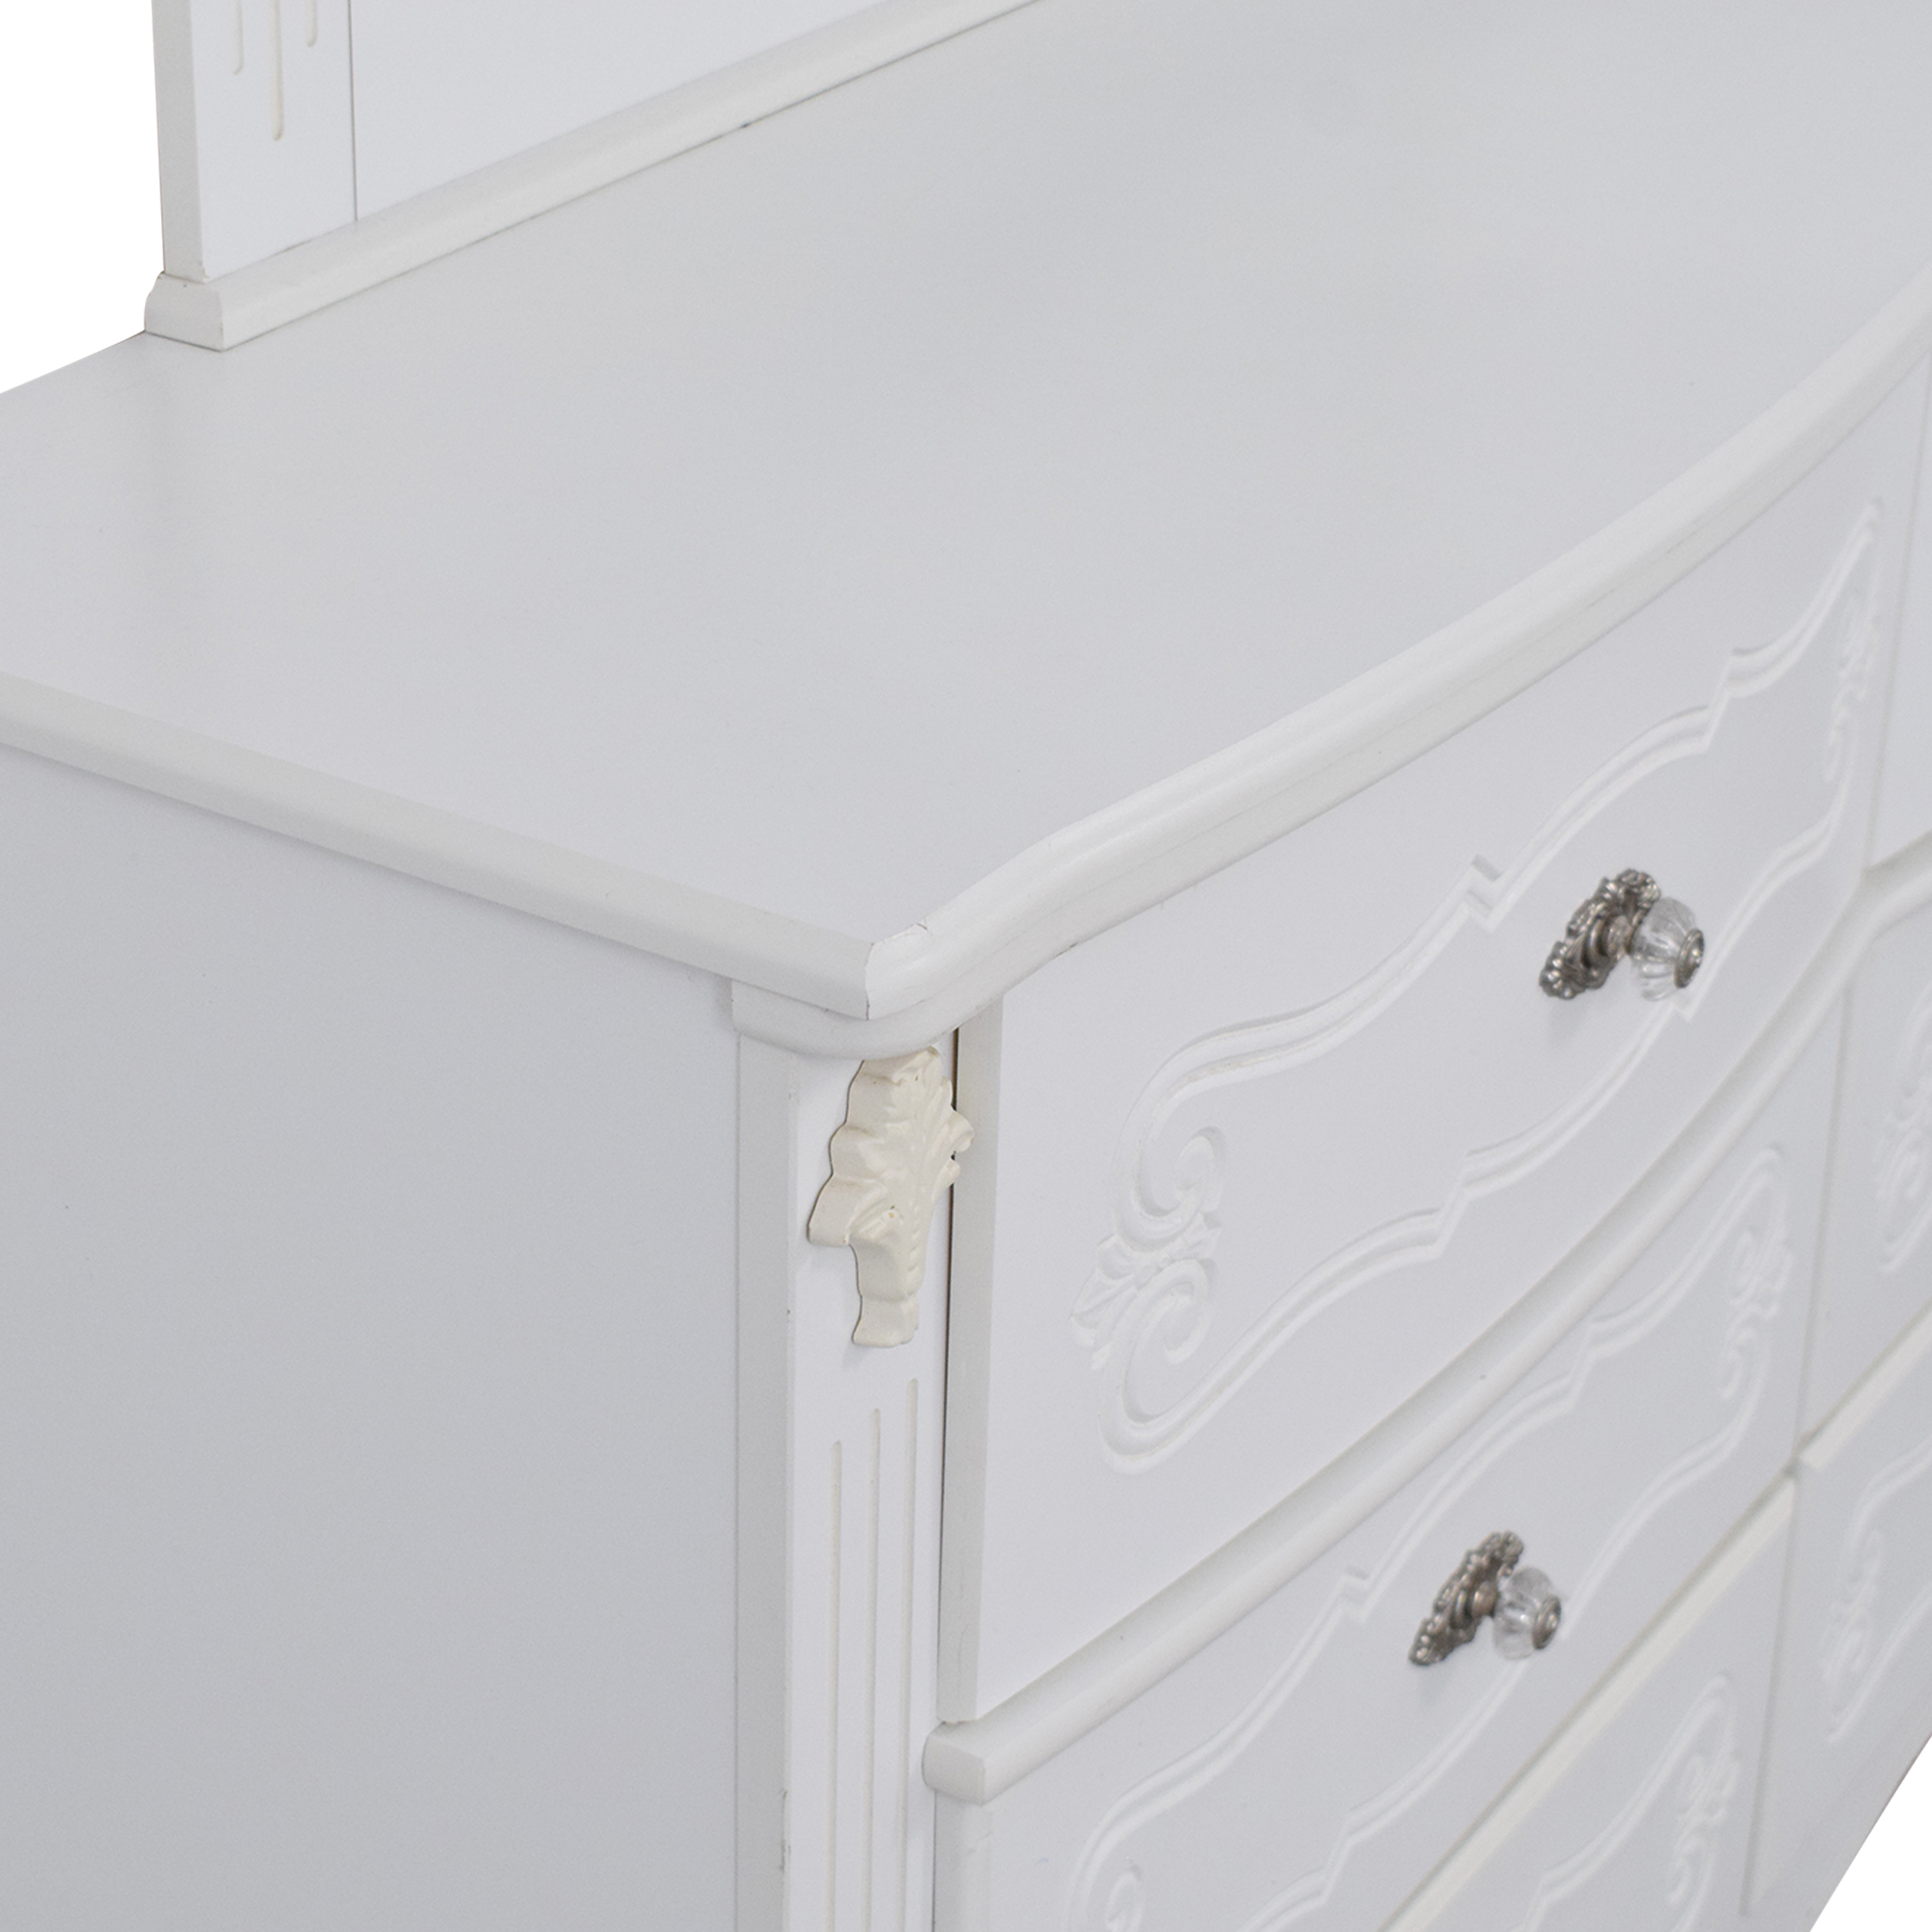 Ashley Furniture Ashley Furniture Dresser with Mirror coupon